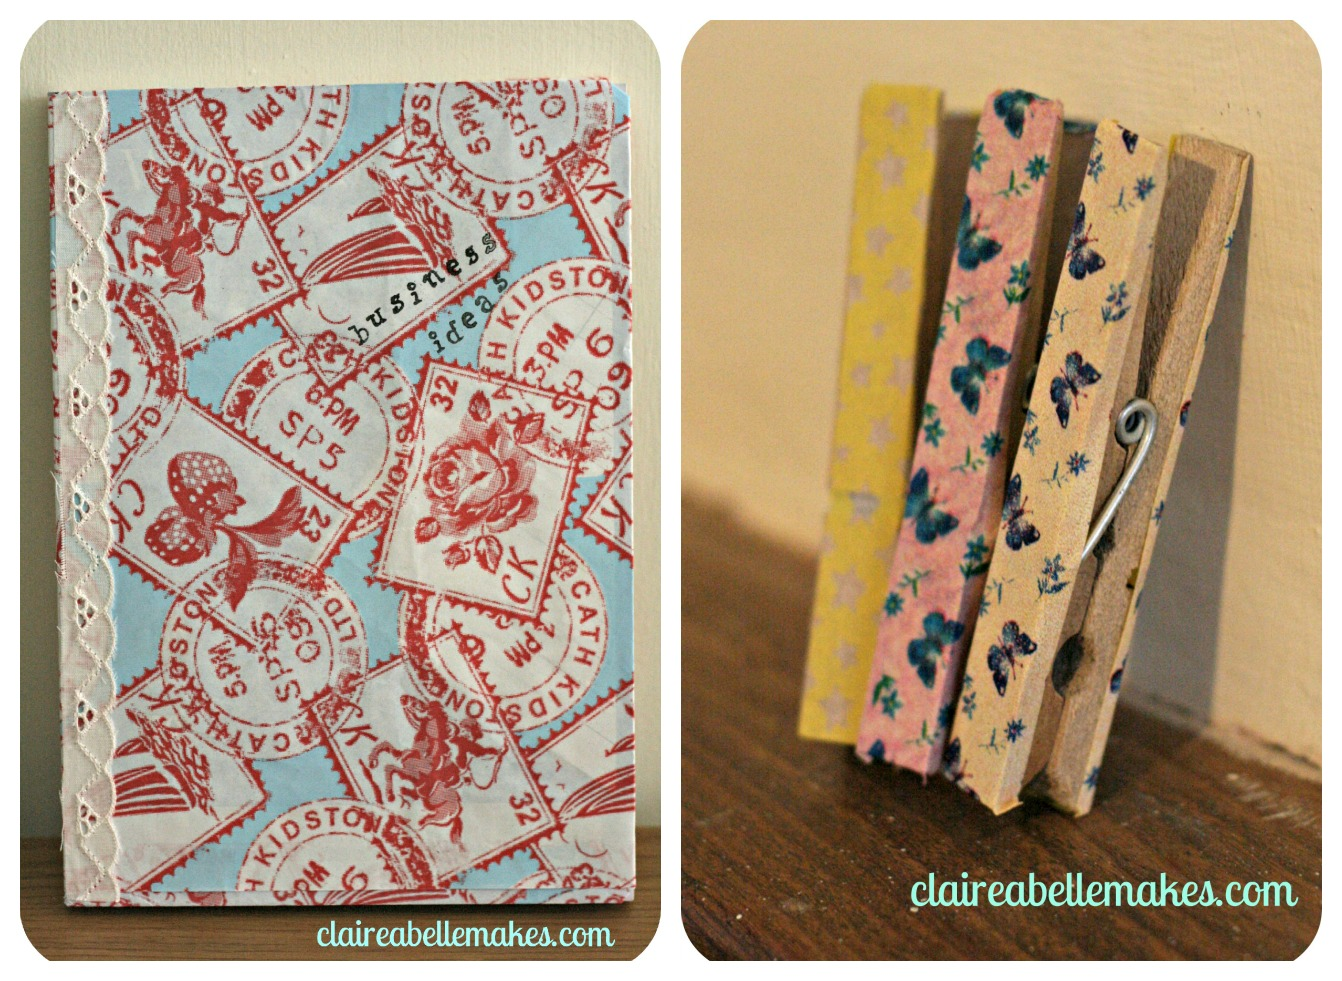 Washi tape Notebook & Pegs: claireabellemakes